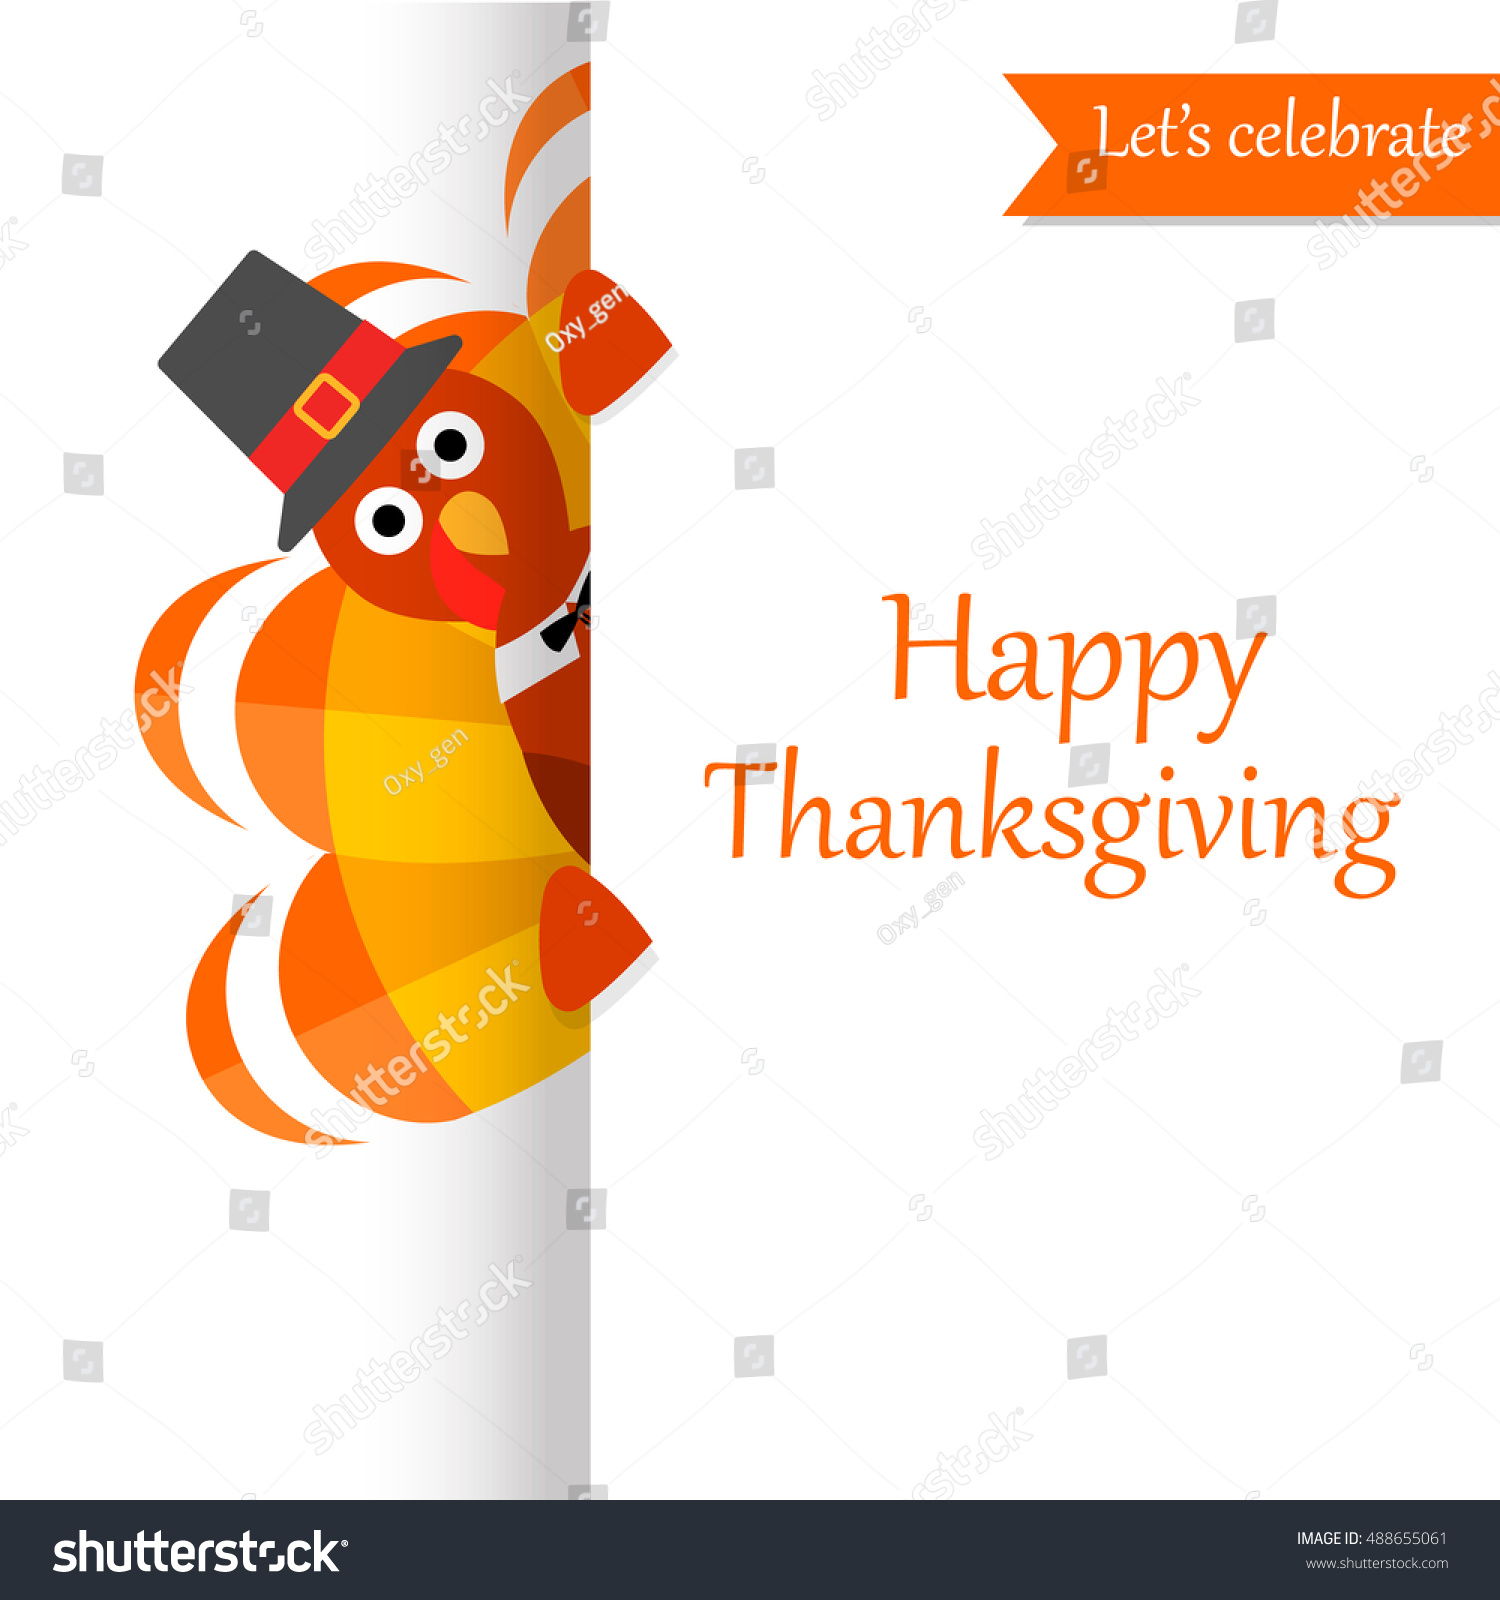 Happy thanksgiving day festive greeting card stock vector royalty happy thanksgiving day festive greeting card with funny turkey character can be used for poster m4hsunfo